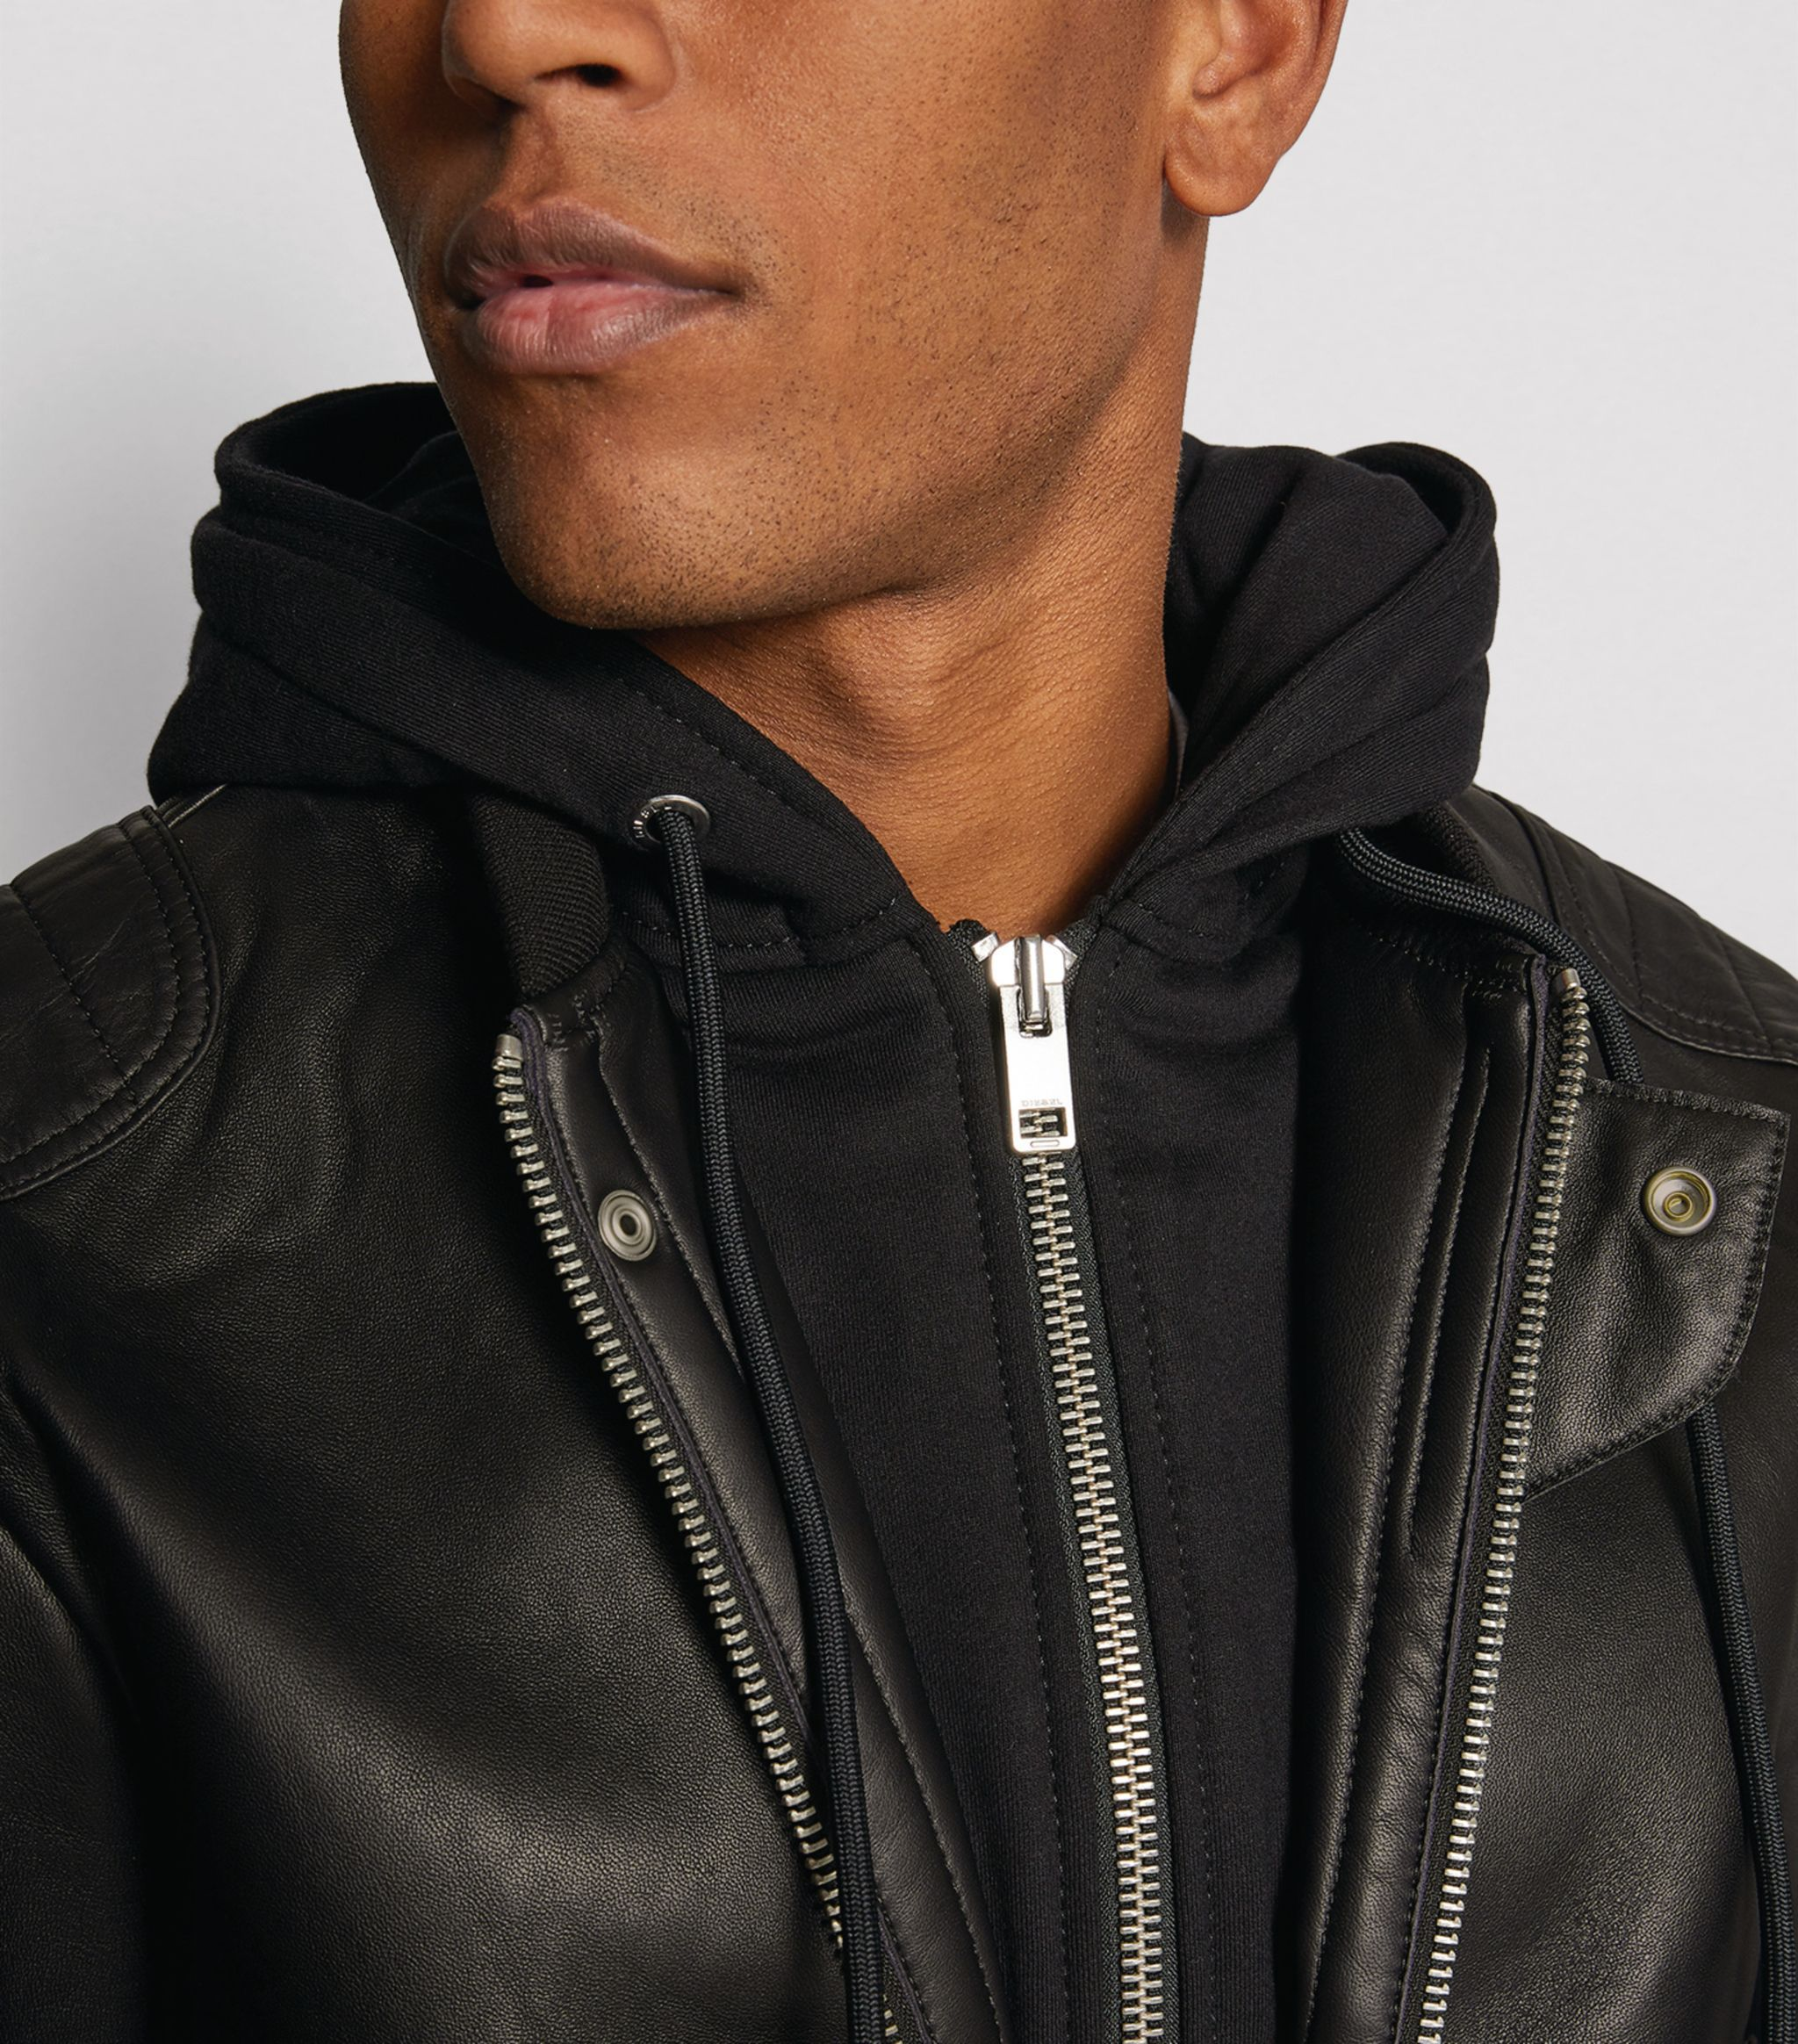 Diesel Black Hooded Leather Jacket Ad Sponsored Black Diesel Hooded Jacket Leather Leather Jacket With Hood Dresses Casual Fall Jackets [ 2328 x 2048 Pixel ]